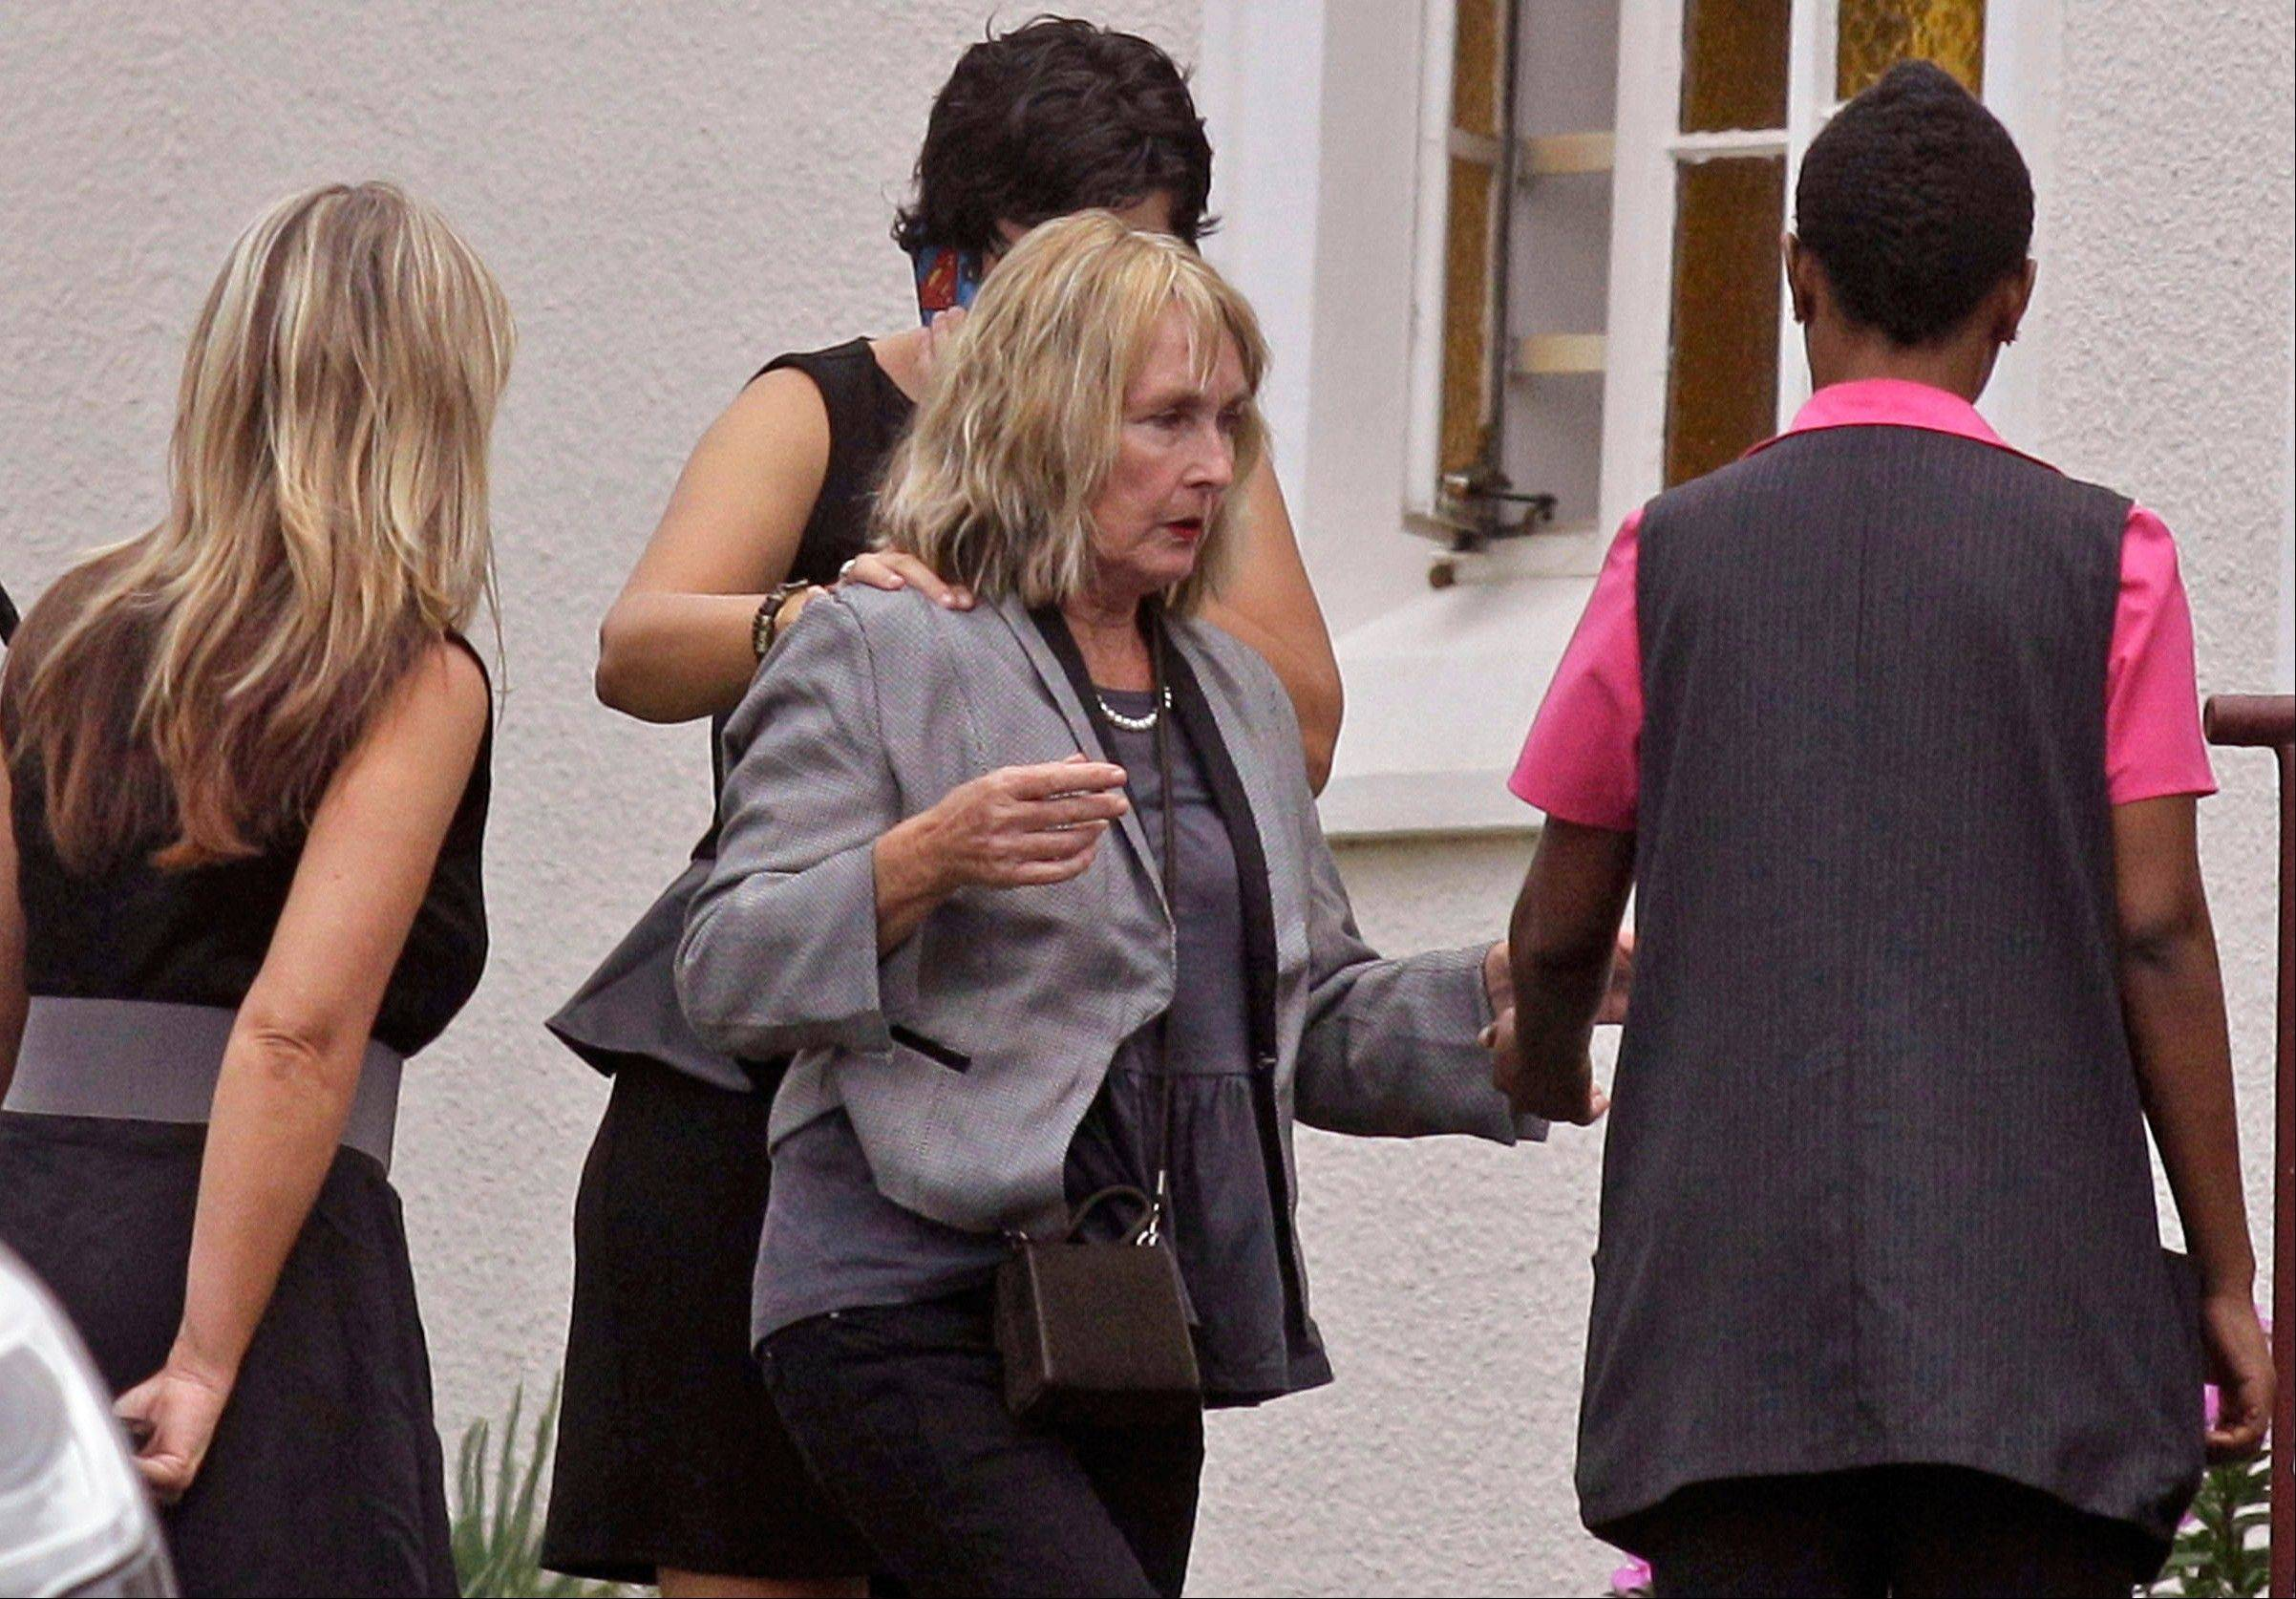 June Steenkamp, center, the mother of Reeva Steenkamp, arrives for her funeral Tuesday in Port Elizabeth, South Africa. The Steenkamp family has struggled with it�s own grief and harbors misgivings about efforts by the Pistorius family to reach out to them with condolences.